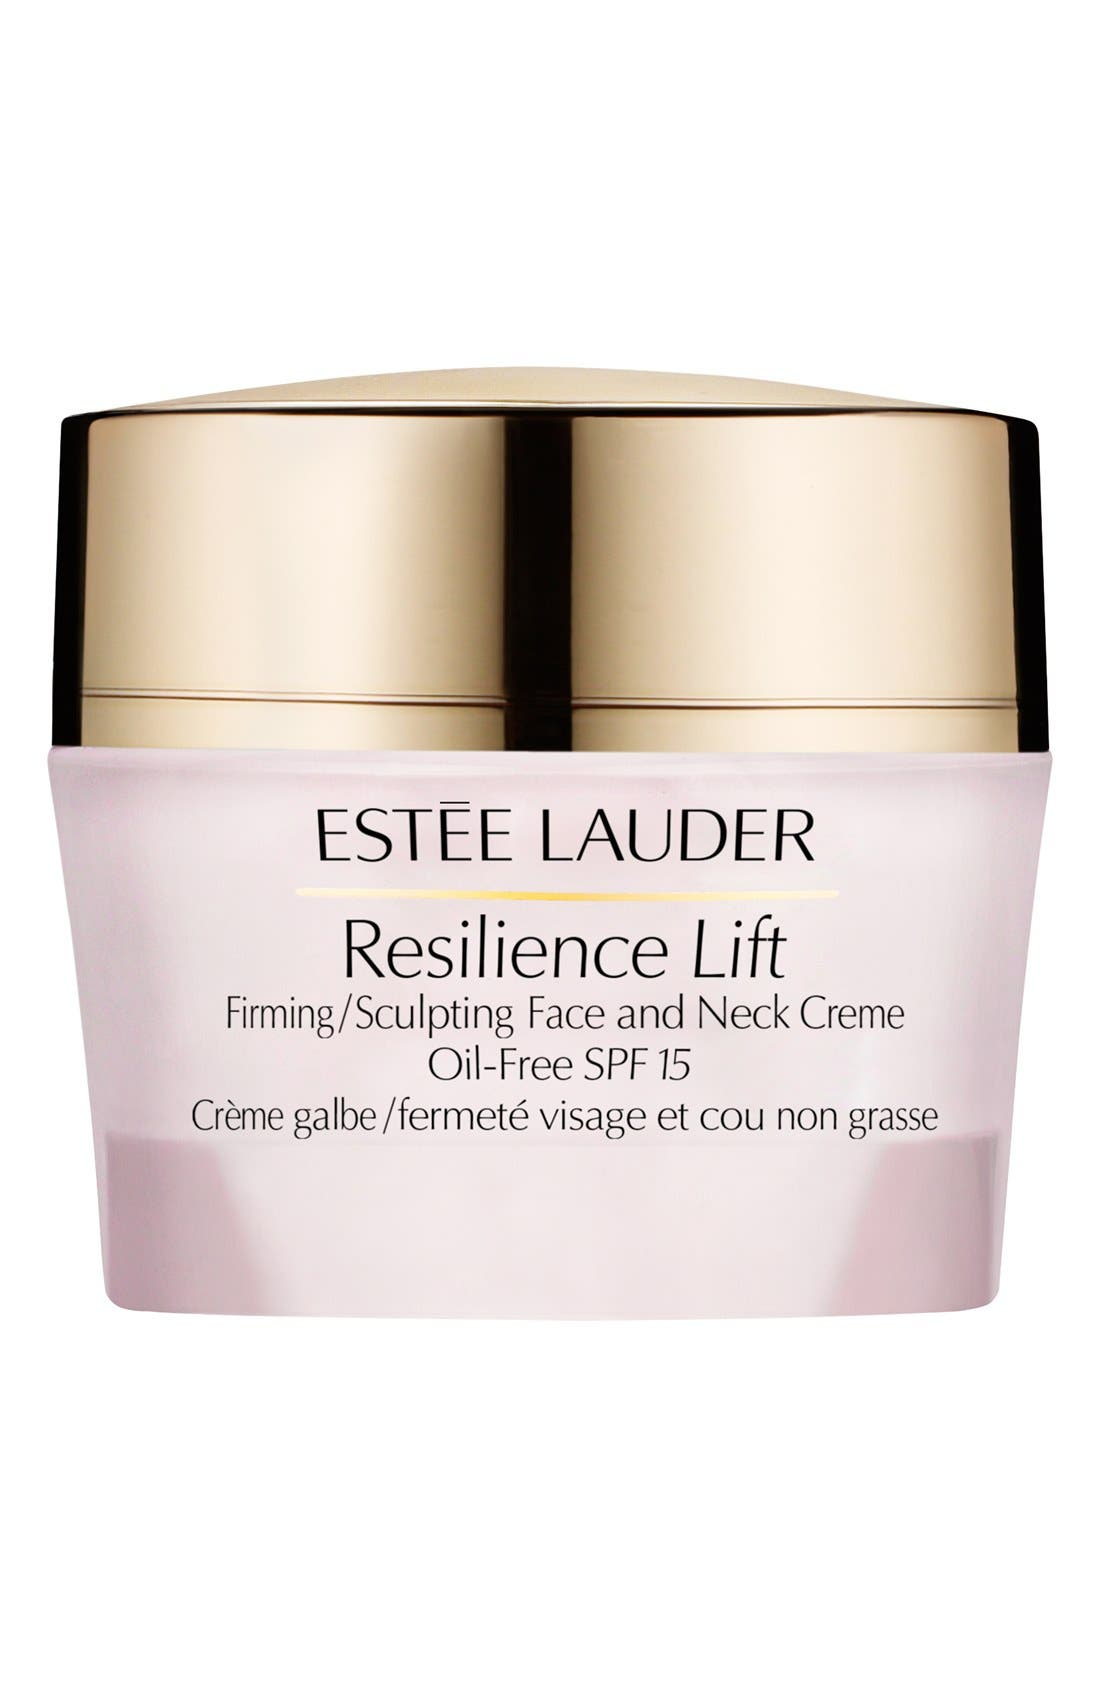 Resilience Lift Firming/Sculpting Face & Neck Creme Oil-Free SPF 15,                         Main,                         color, 000